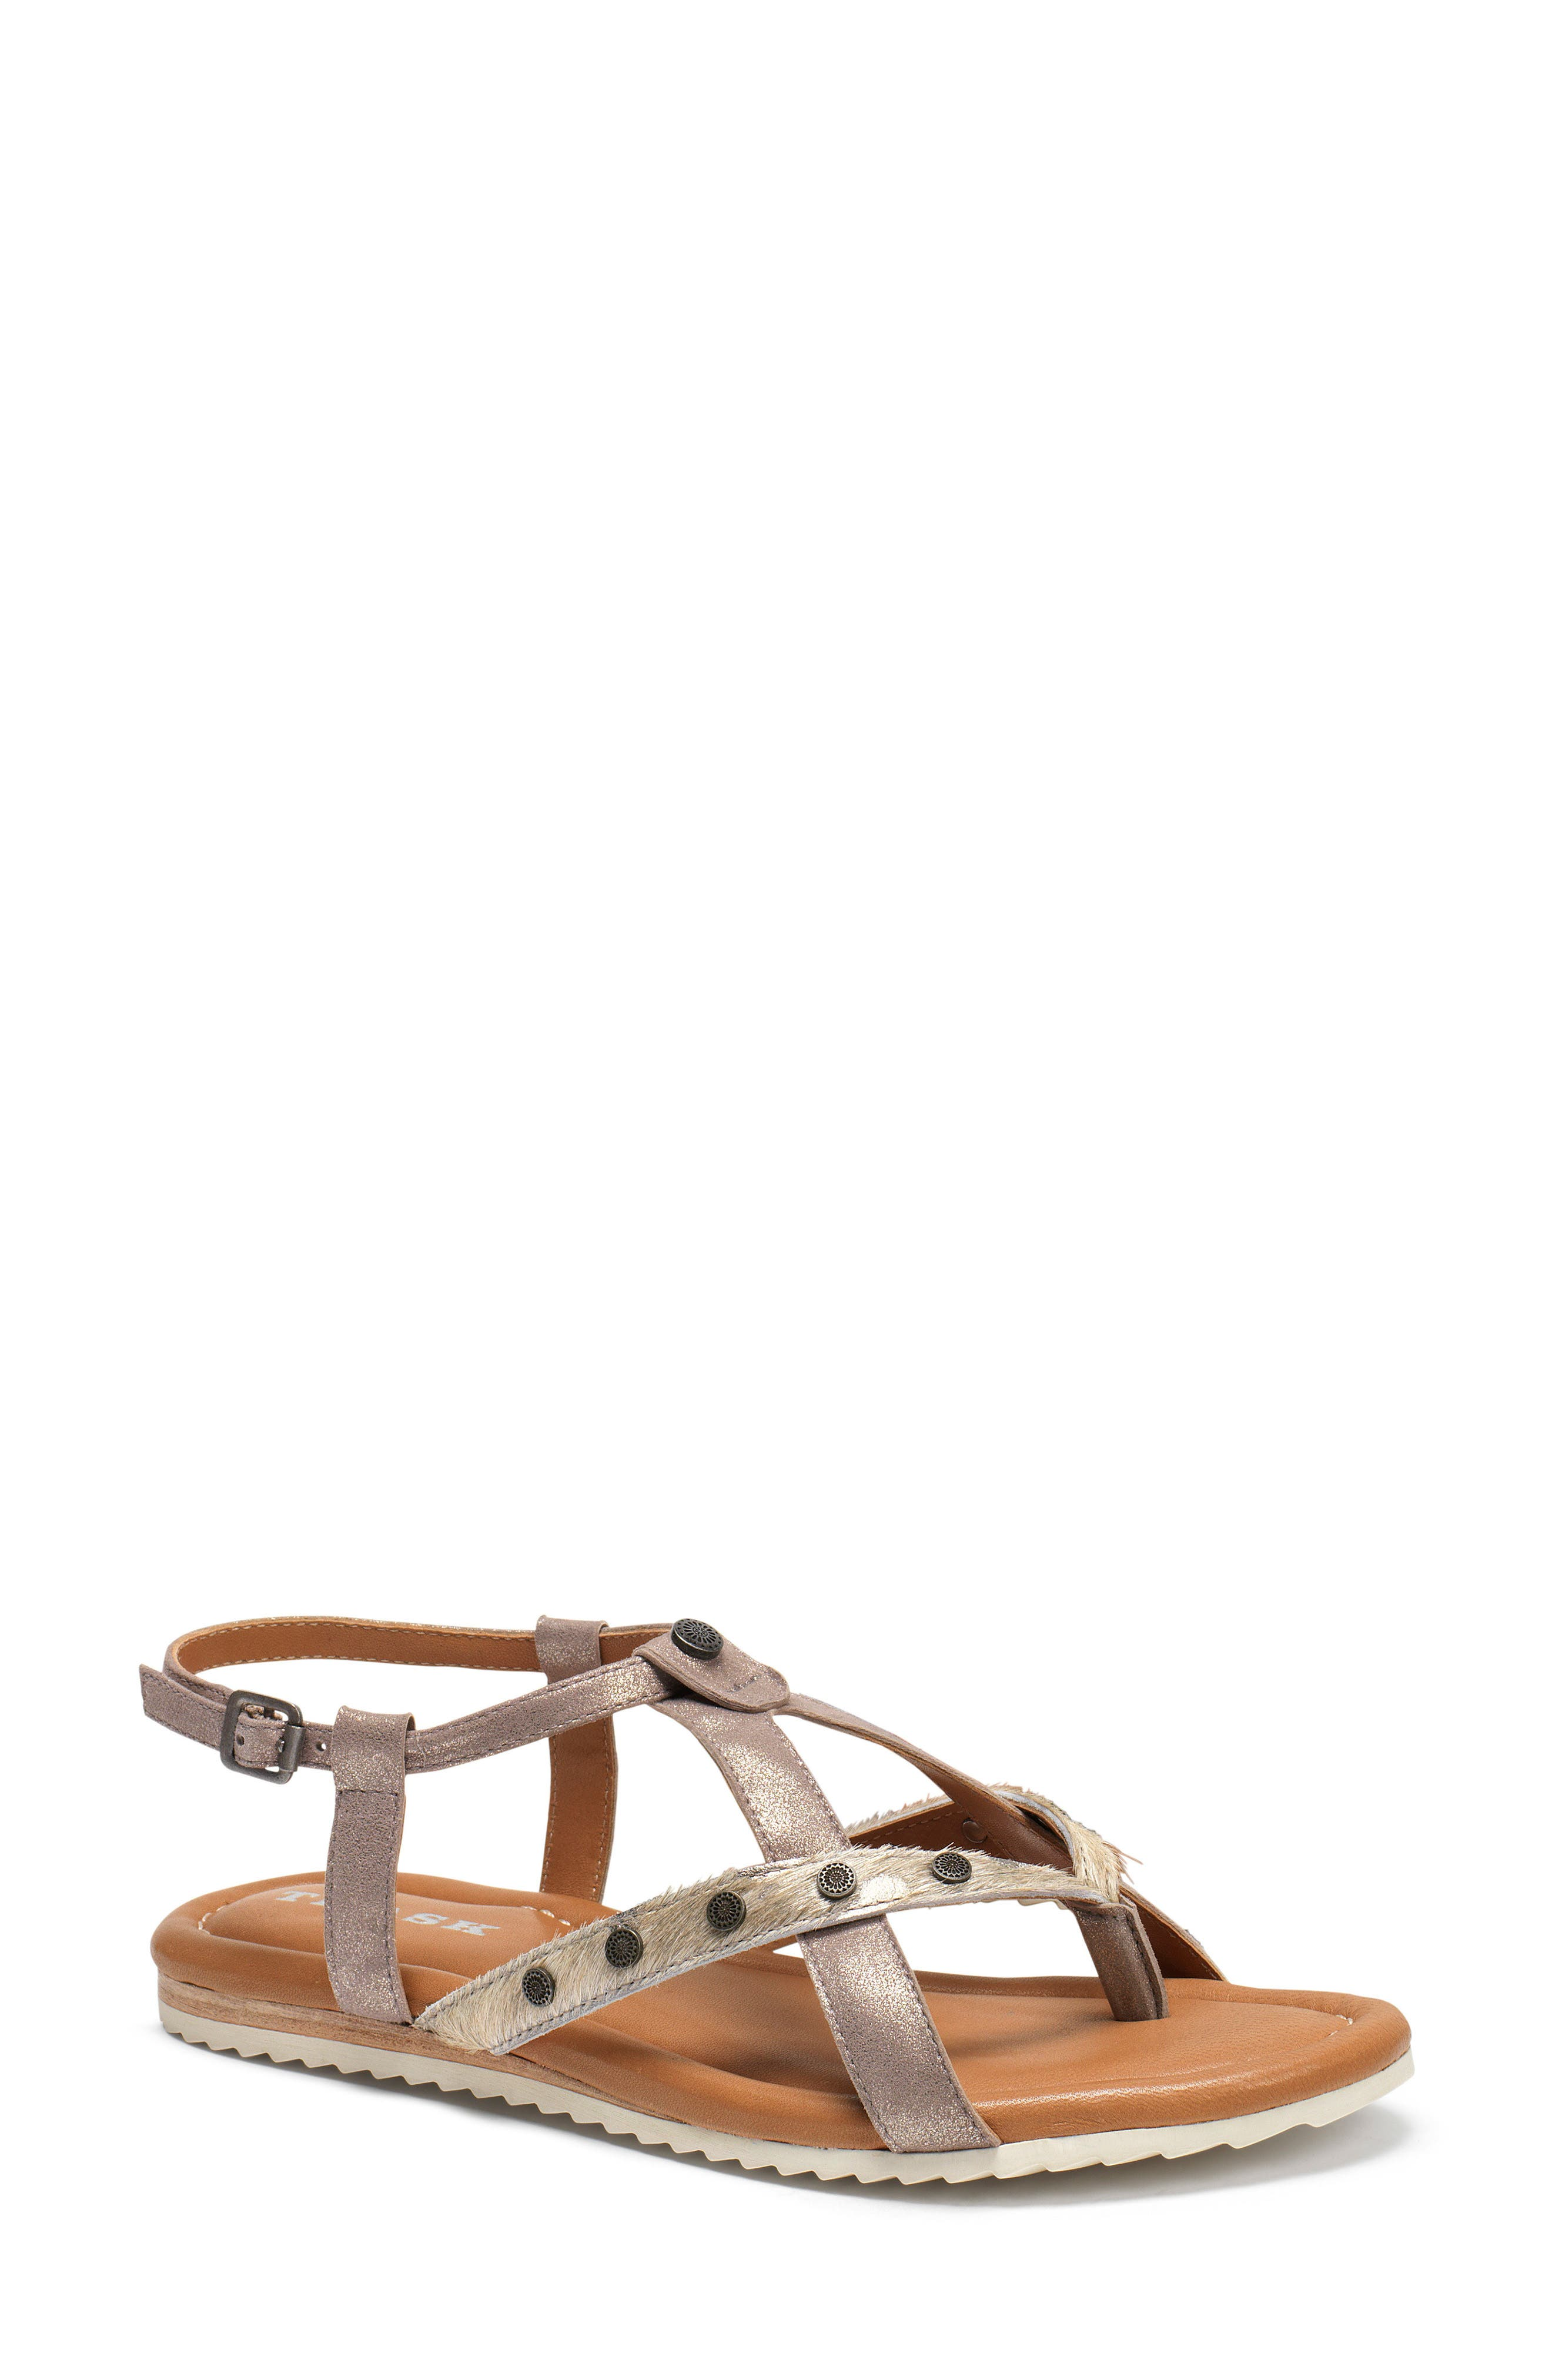 Shayla Water Resistant Sandal,                         Main,                         color, PEWTER/ BONE SUEDE